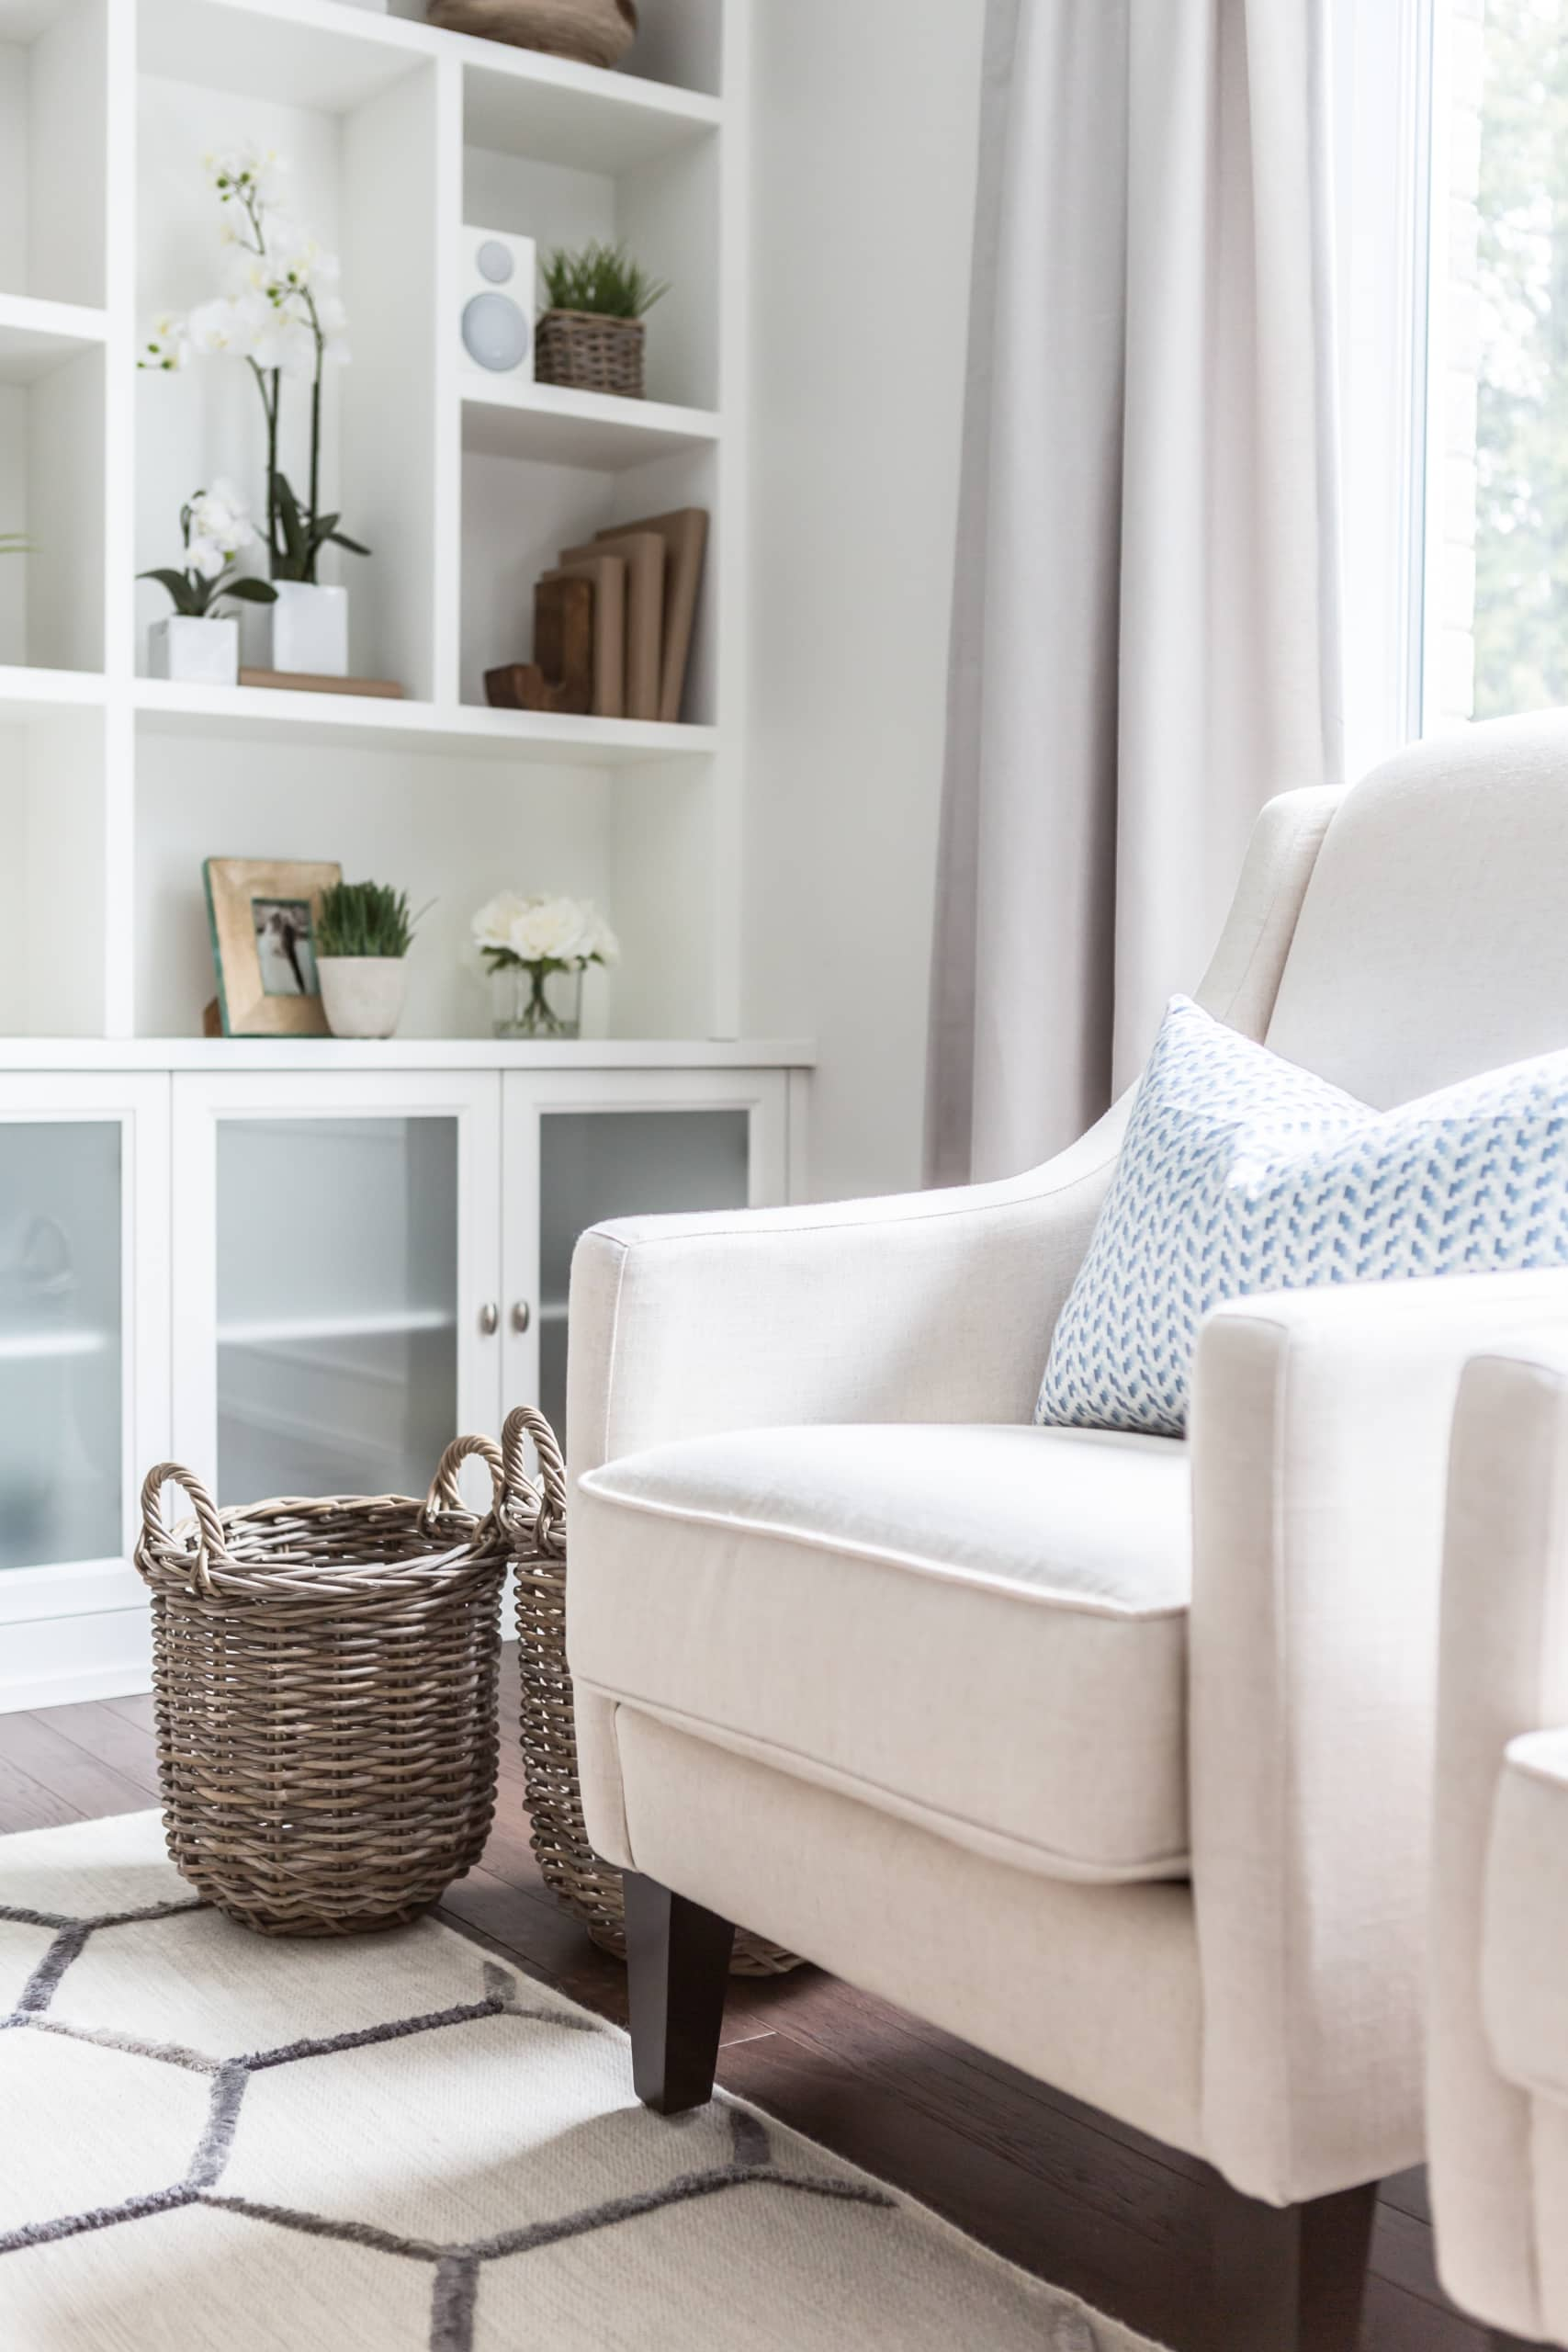 White chair with two baskets next to it